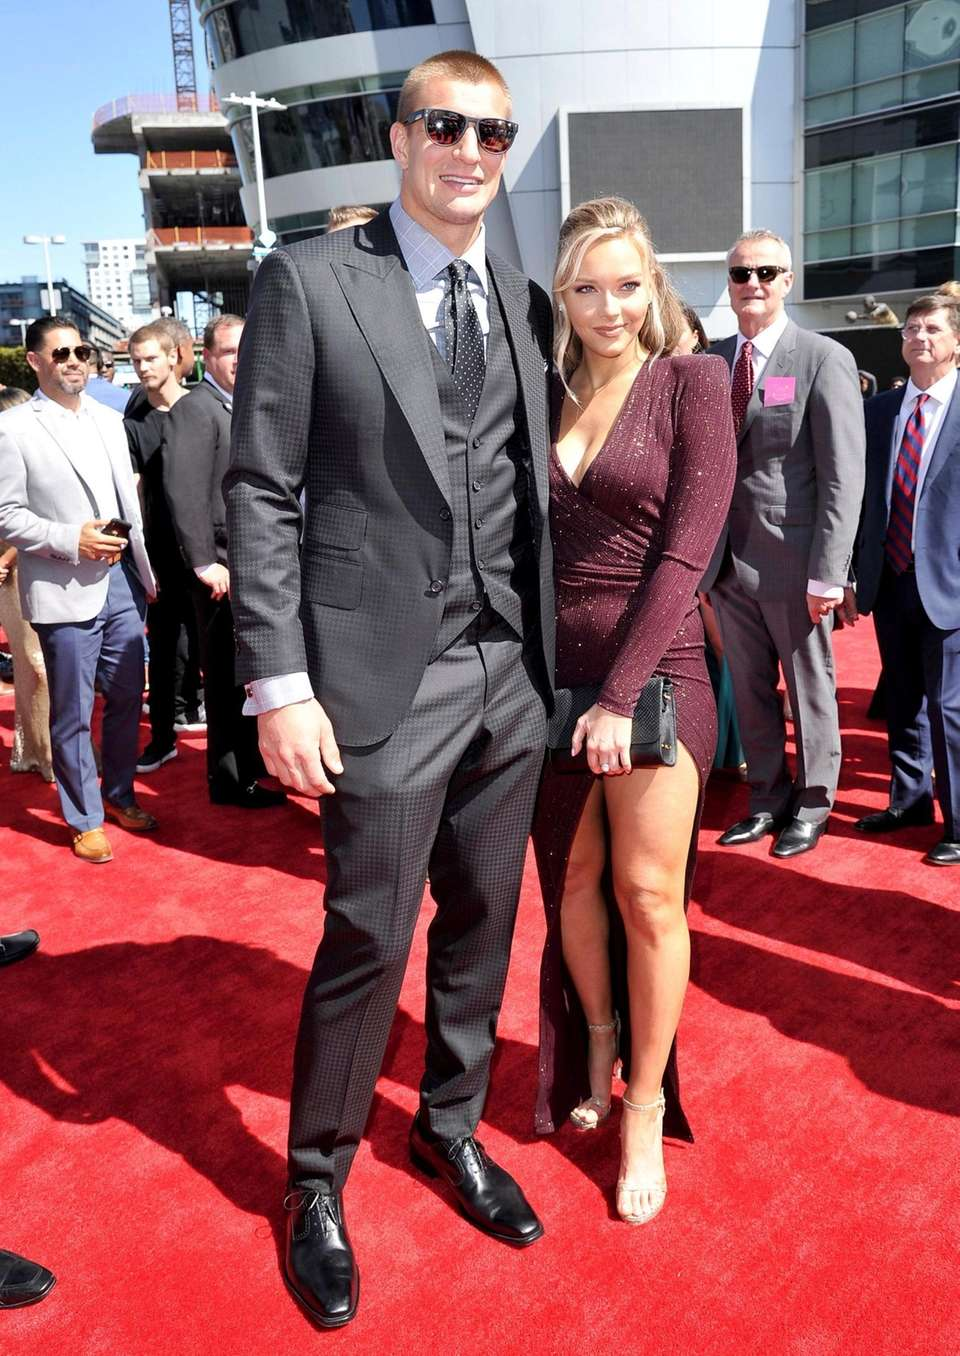 Rob Gronkowski, left, and Camille Kostek arrive at